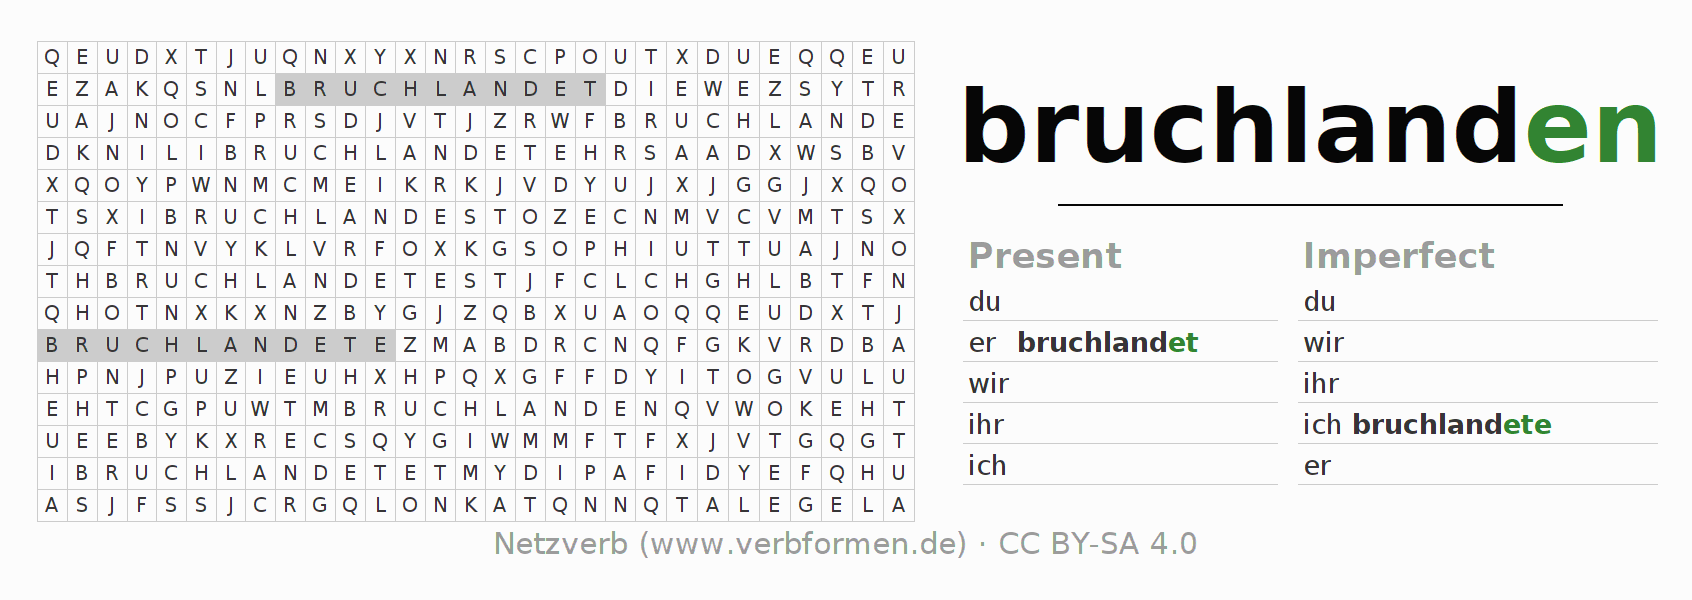 Word search puzzle for the conjugation of the verb bruchlanden